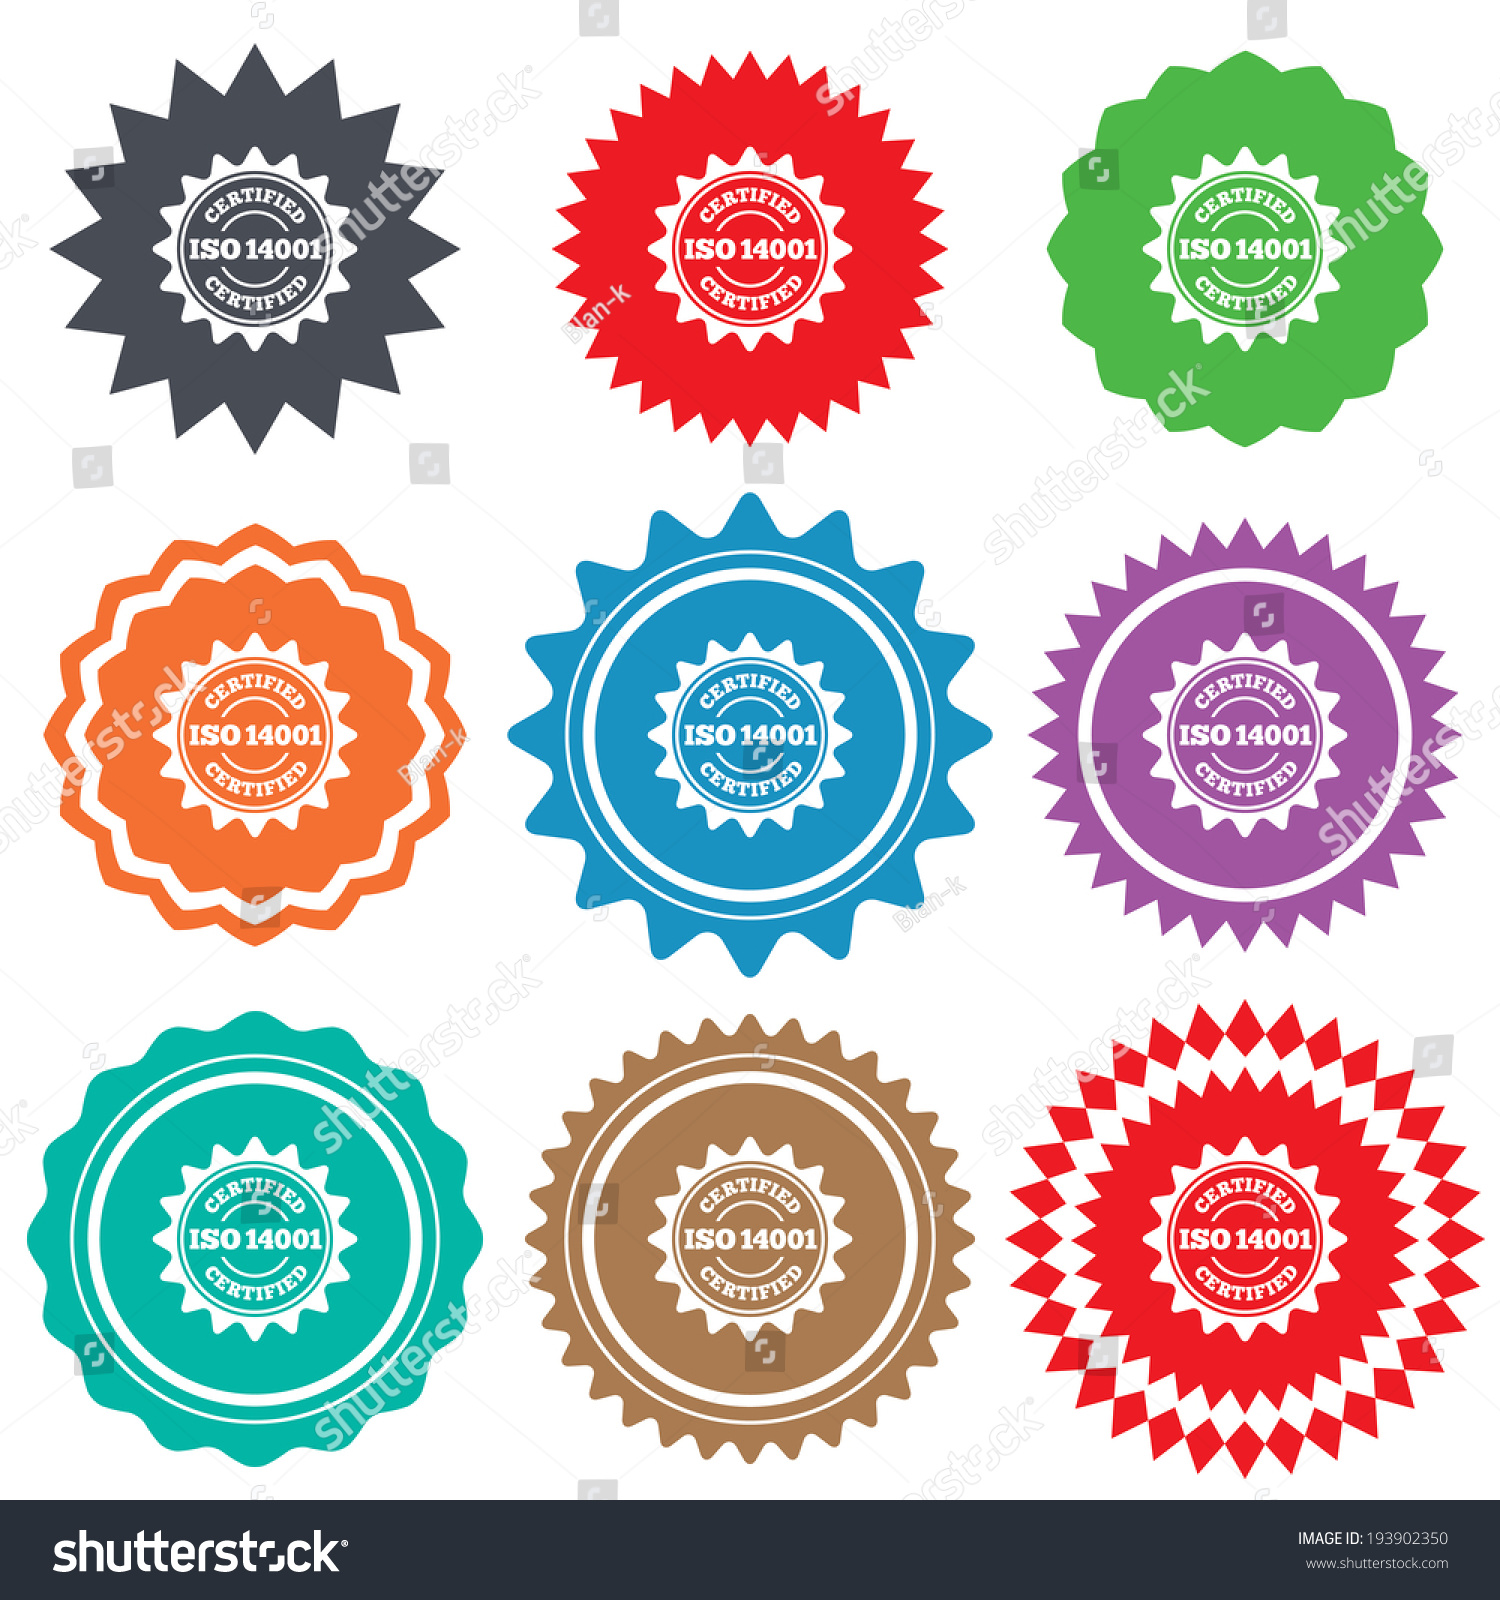 Royalty Free Iso 14001 Certified Sign Icon 193902350 Stock Photo